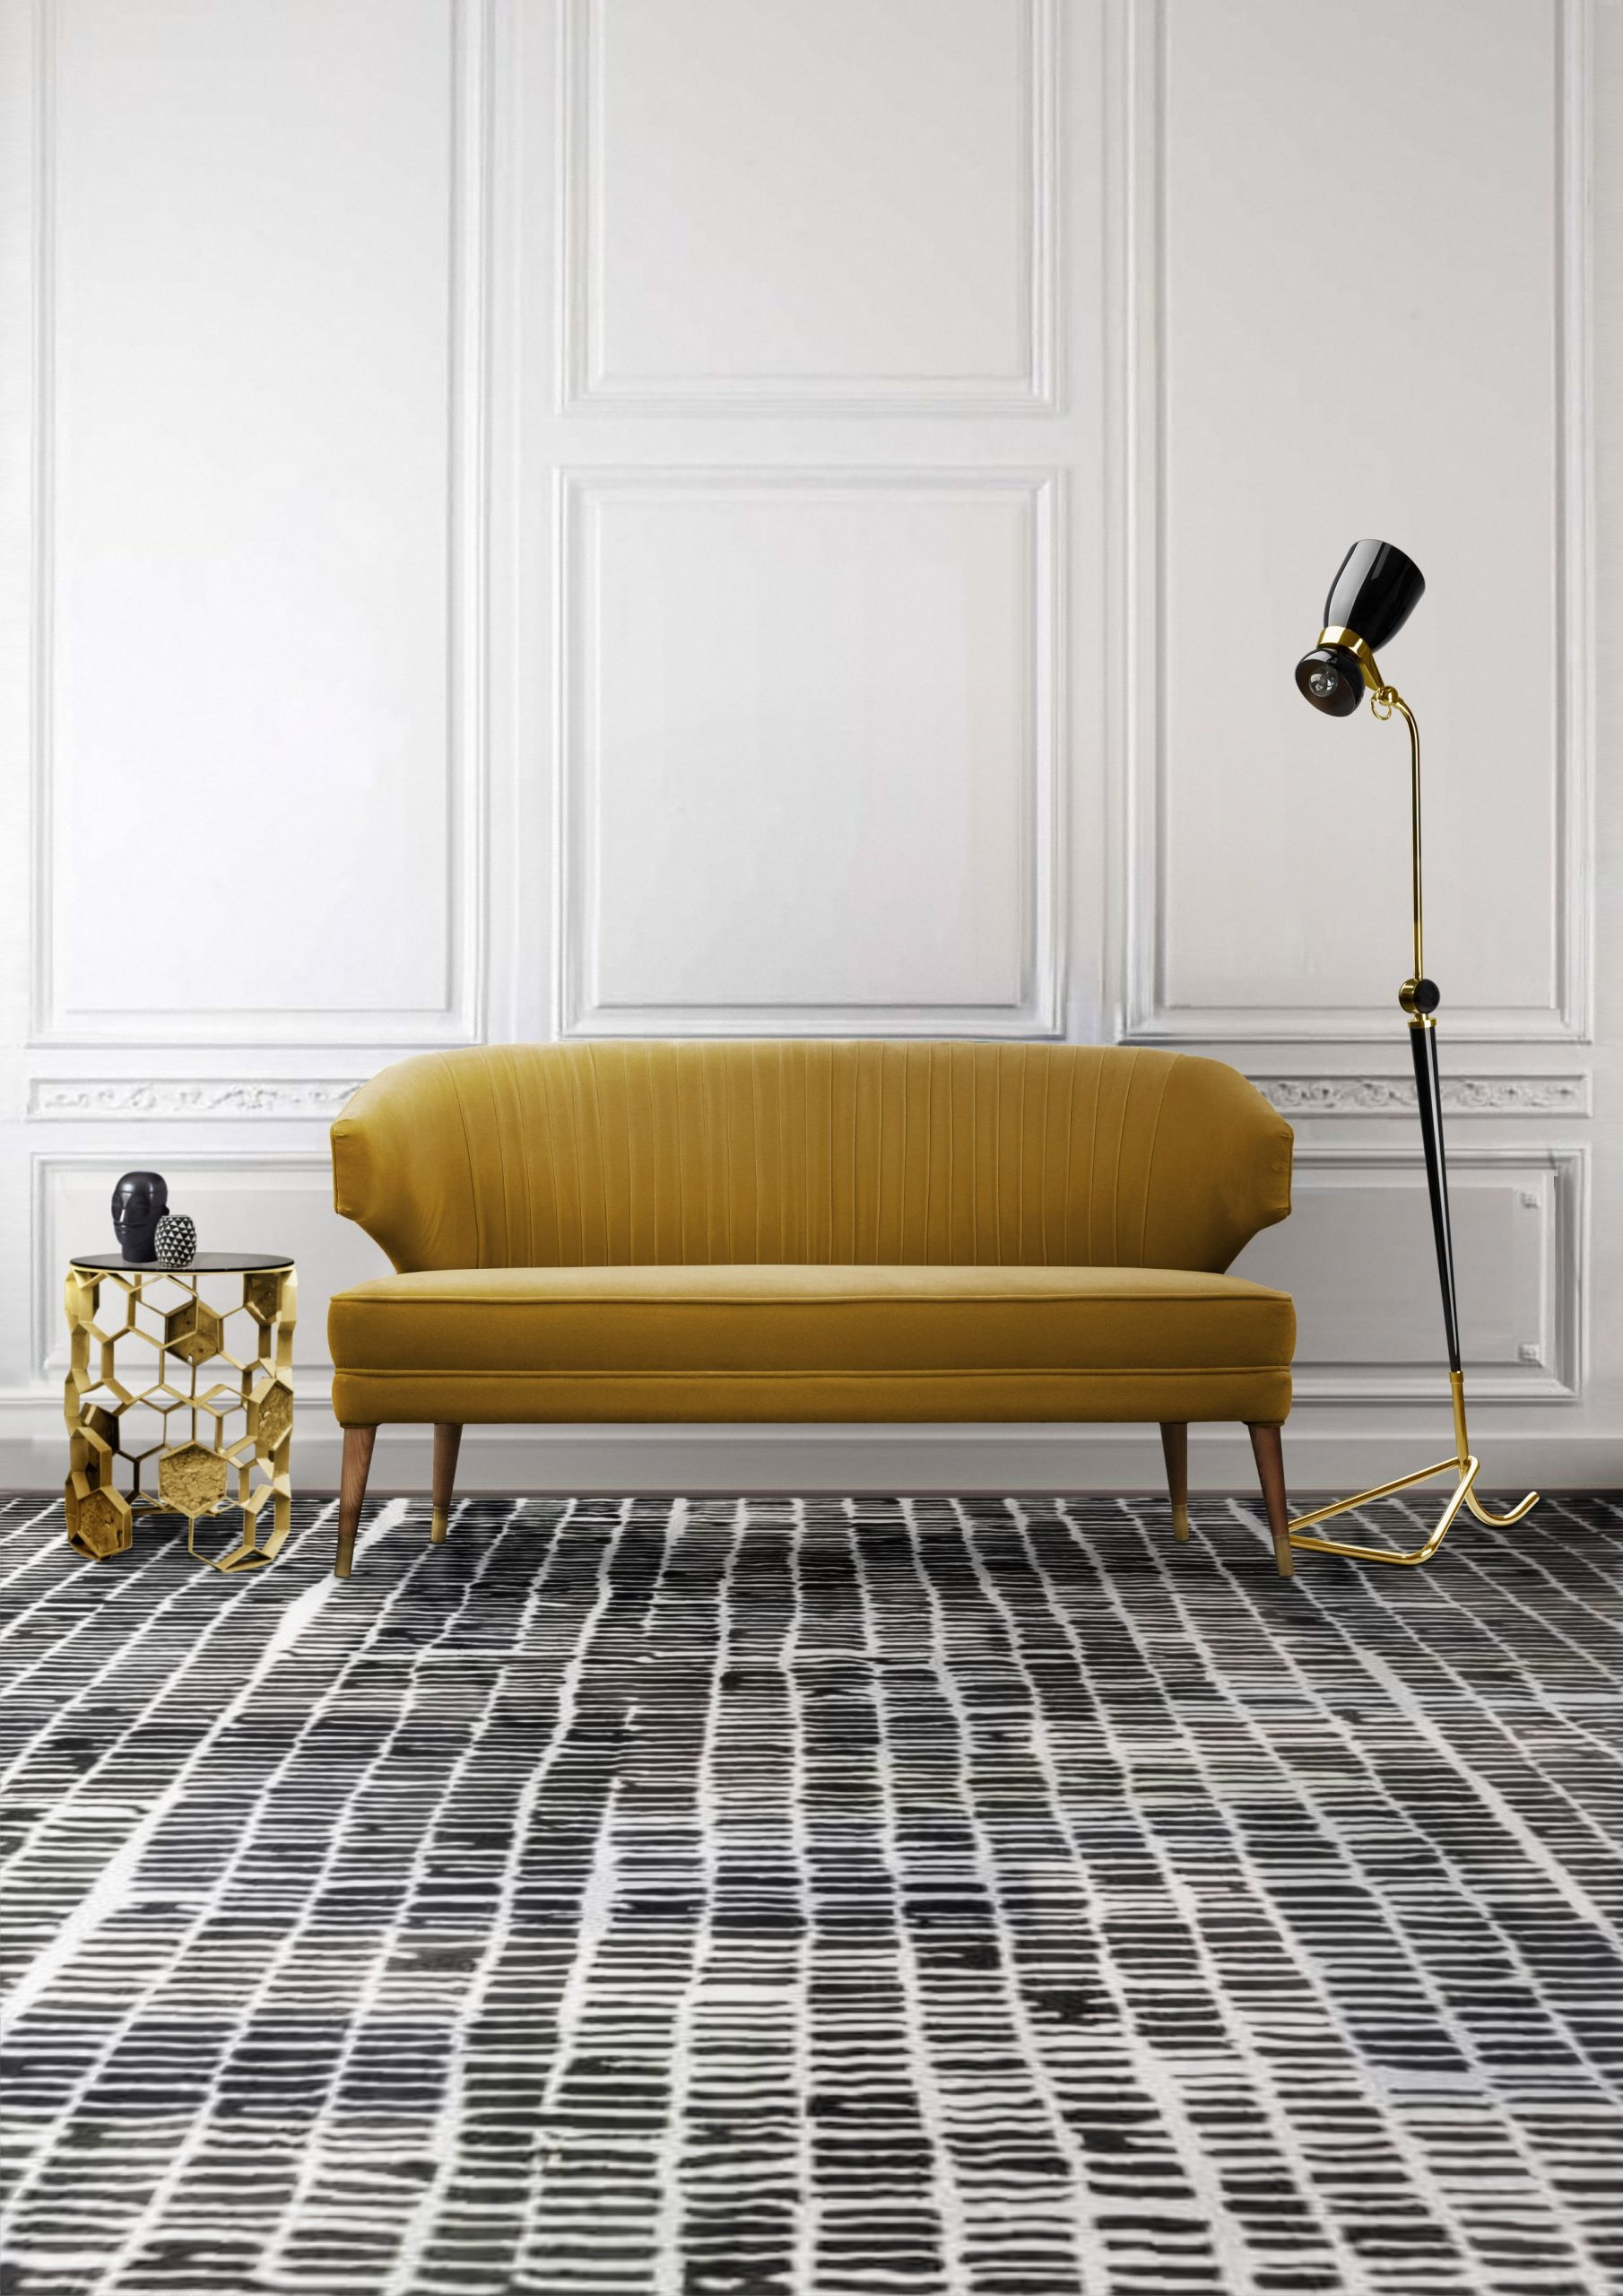 LIVING ROOM WITH A MINIMALIST DESIGN AND THE COLL AREA RUG